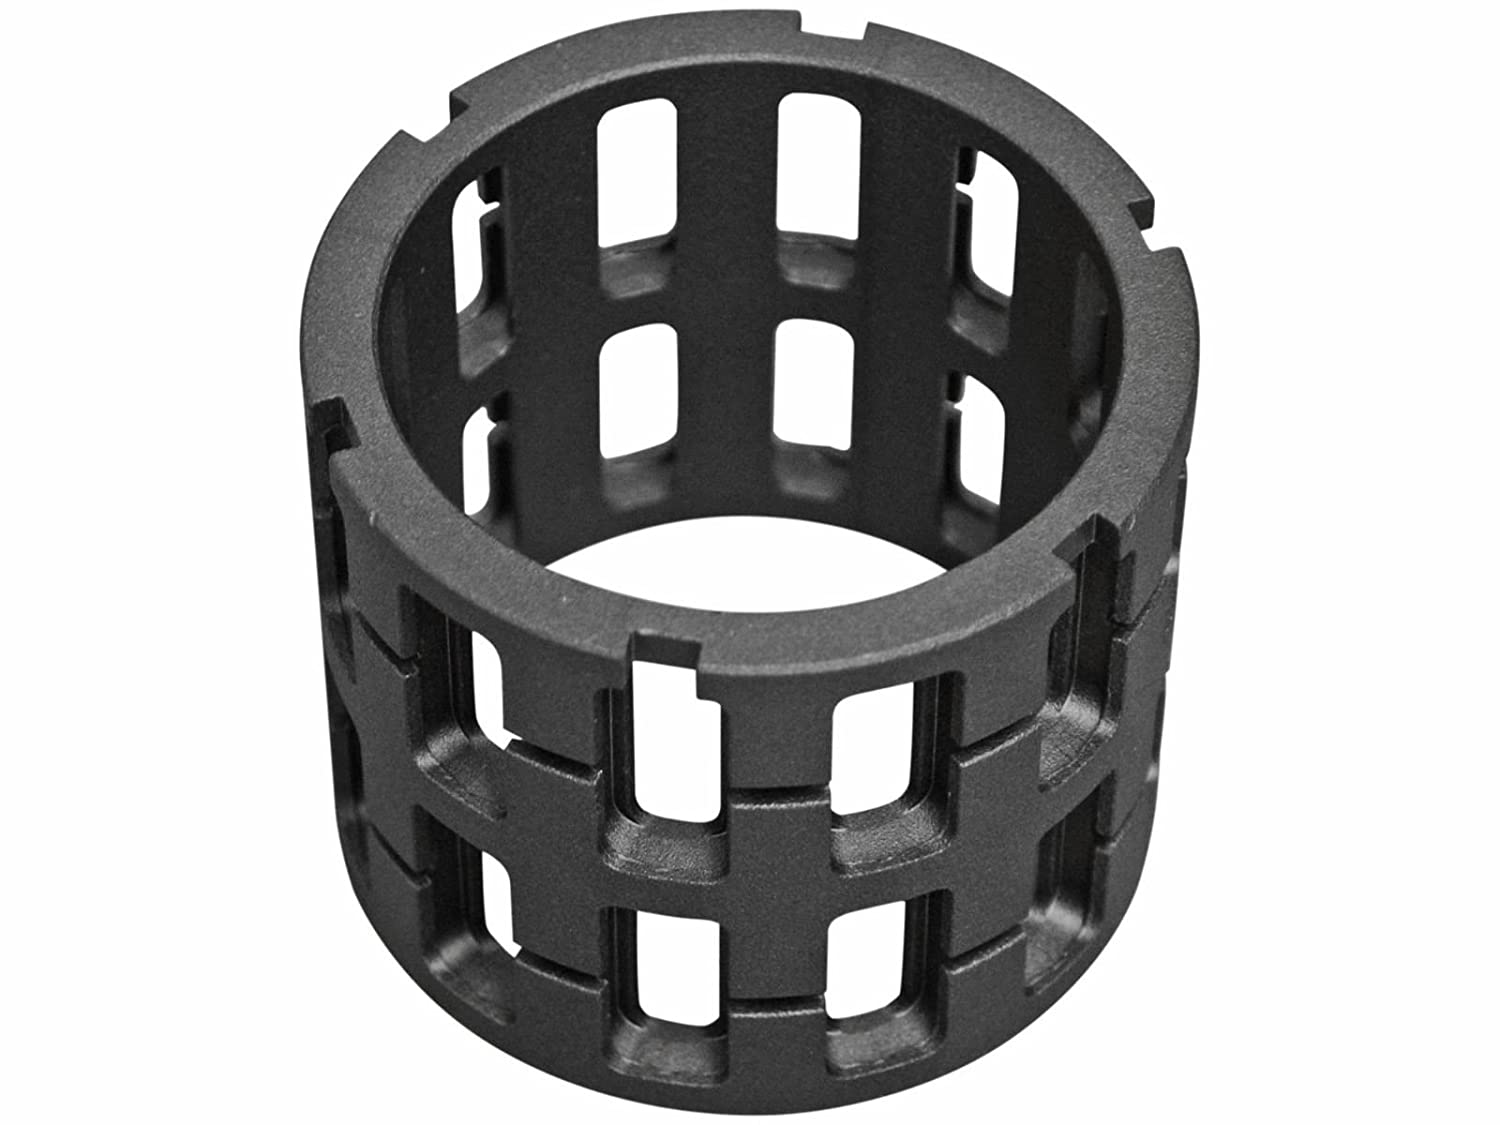 SuperATV Polaris RZR, Ranger, General 900 / 1000 / Turbo heavy Duty Sprague Carrier / Front Roller Cage - Replaces OEM 3235625 and 3235844 (See Fitment)